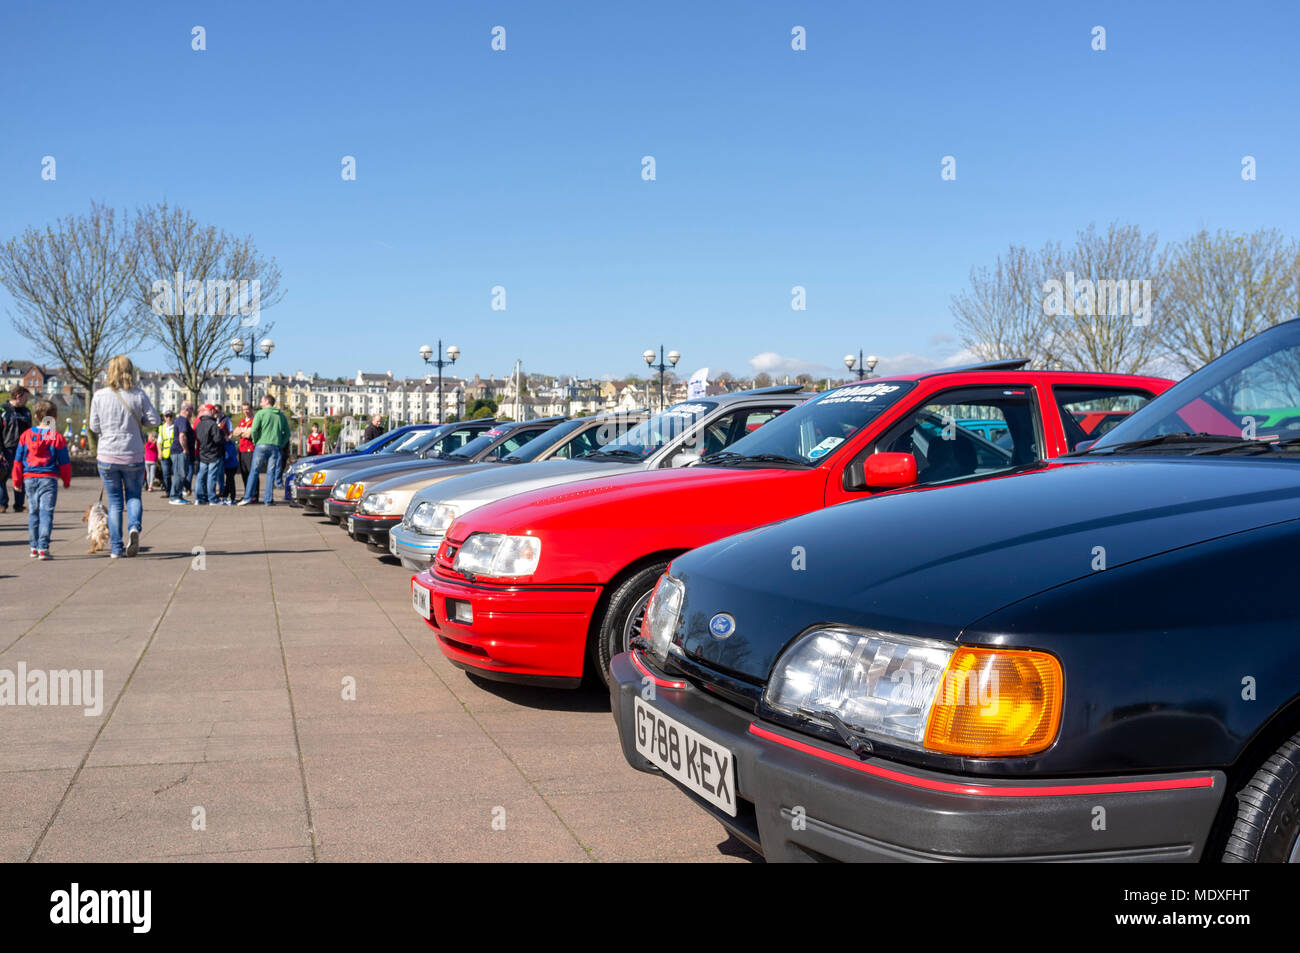 Bangor, Northern Ireland, UK, 21 April 2018. Assorted Ford cars gather in support of  the Cancer Centre in an event organised by The Capri Club of Northern Ireland. Credit J Orr/Alamy Live News - Stock Image